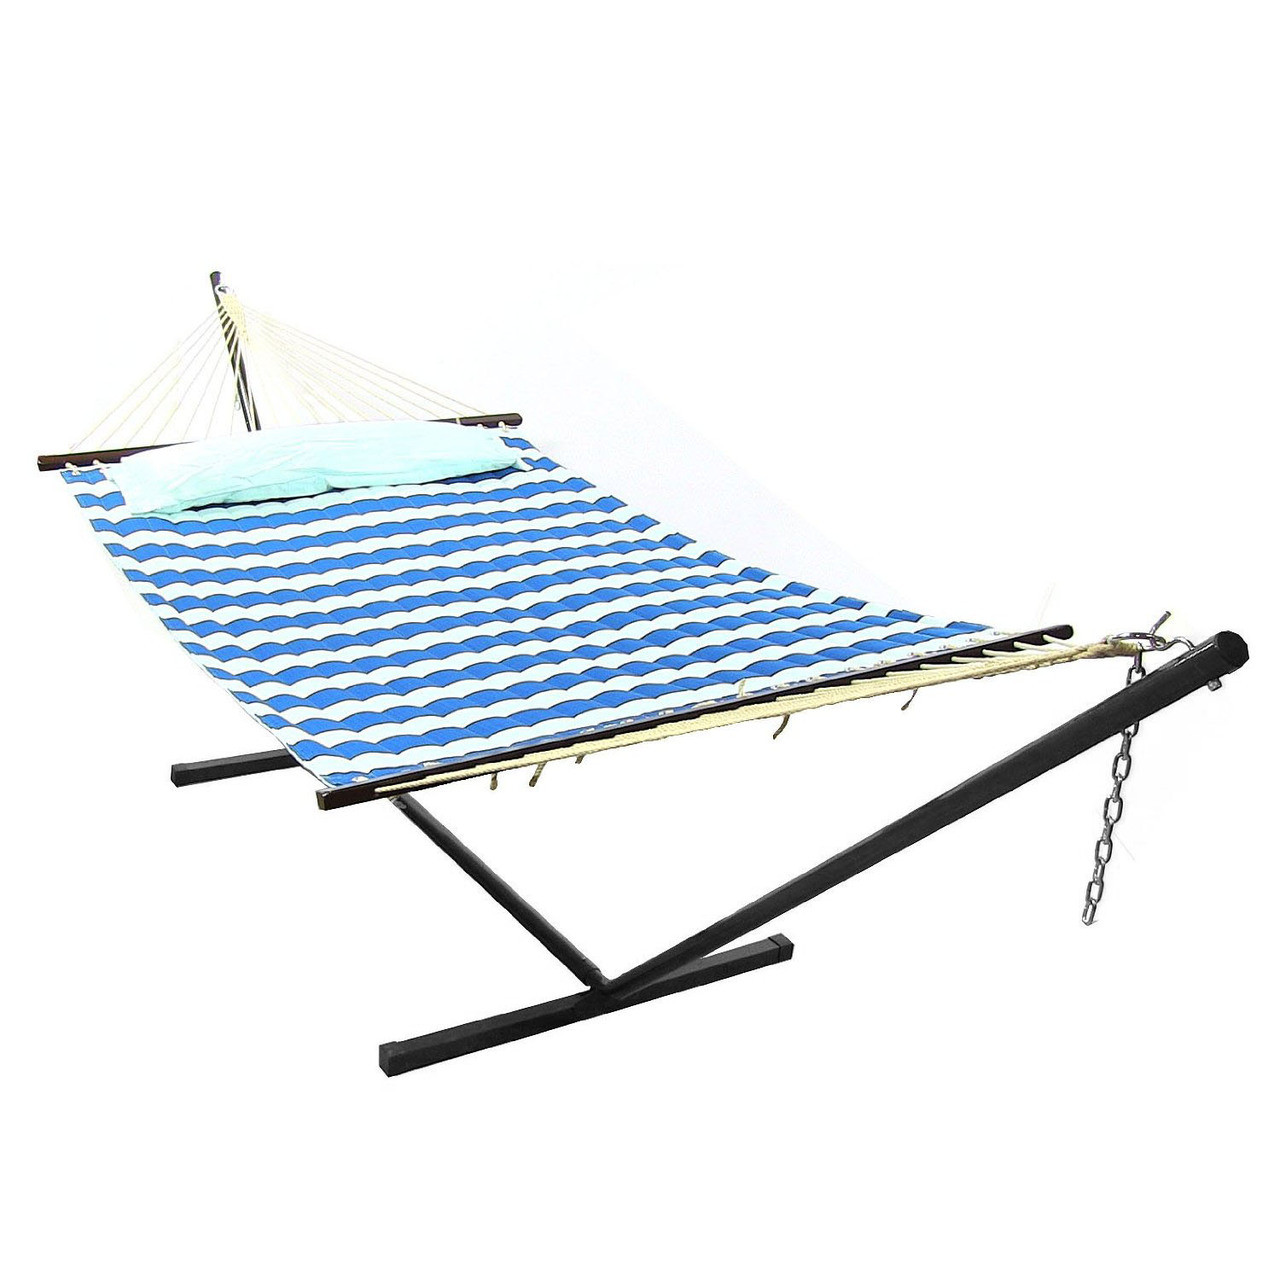 Sunnydaze Royal Blue Quilted Double Fabric Hammock Spreader Bars Pillow an Picture 455